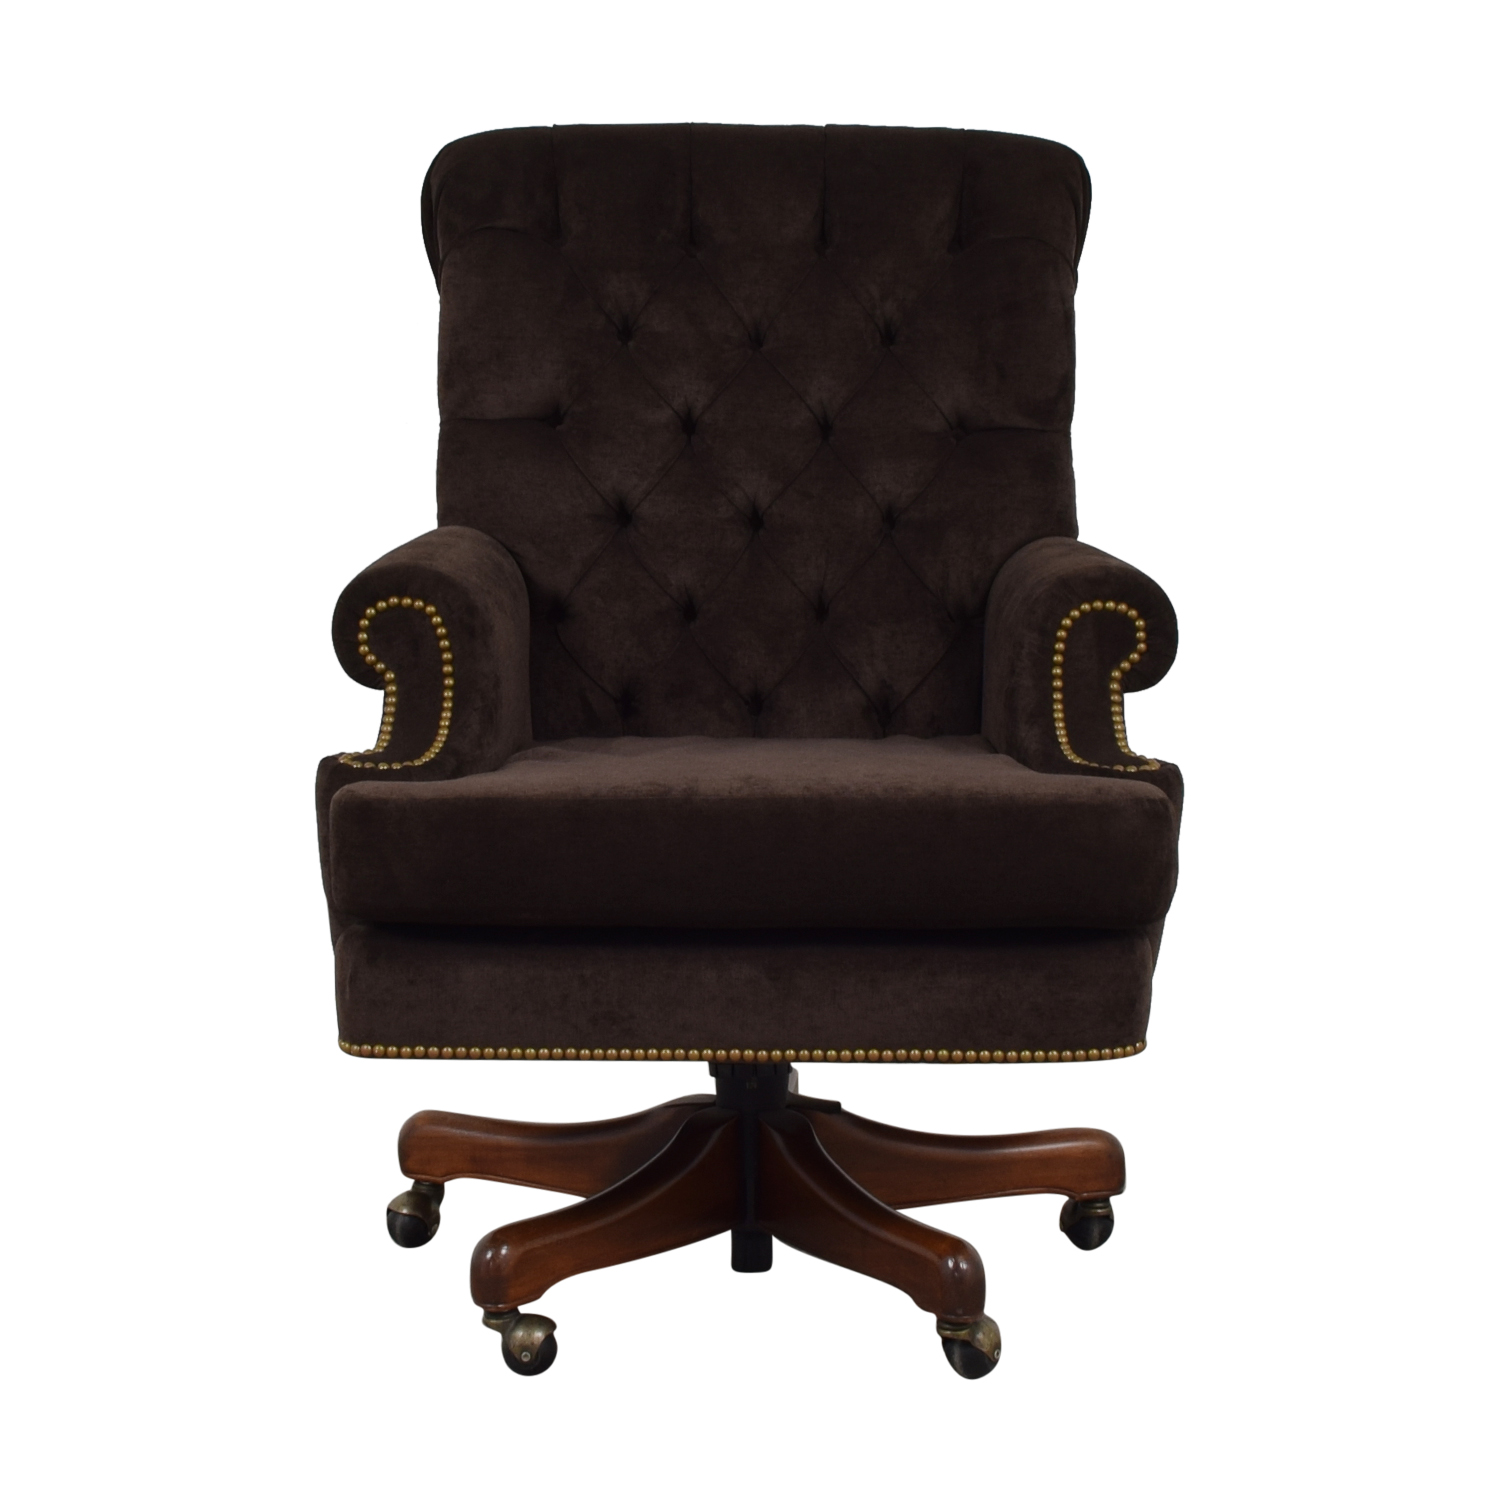 Furniture Masters Brown Nailhead Tufted Desk Chair on Castors Furniture Masters